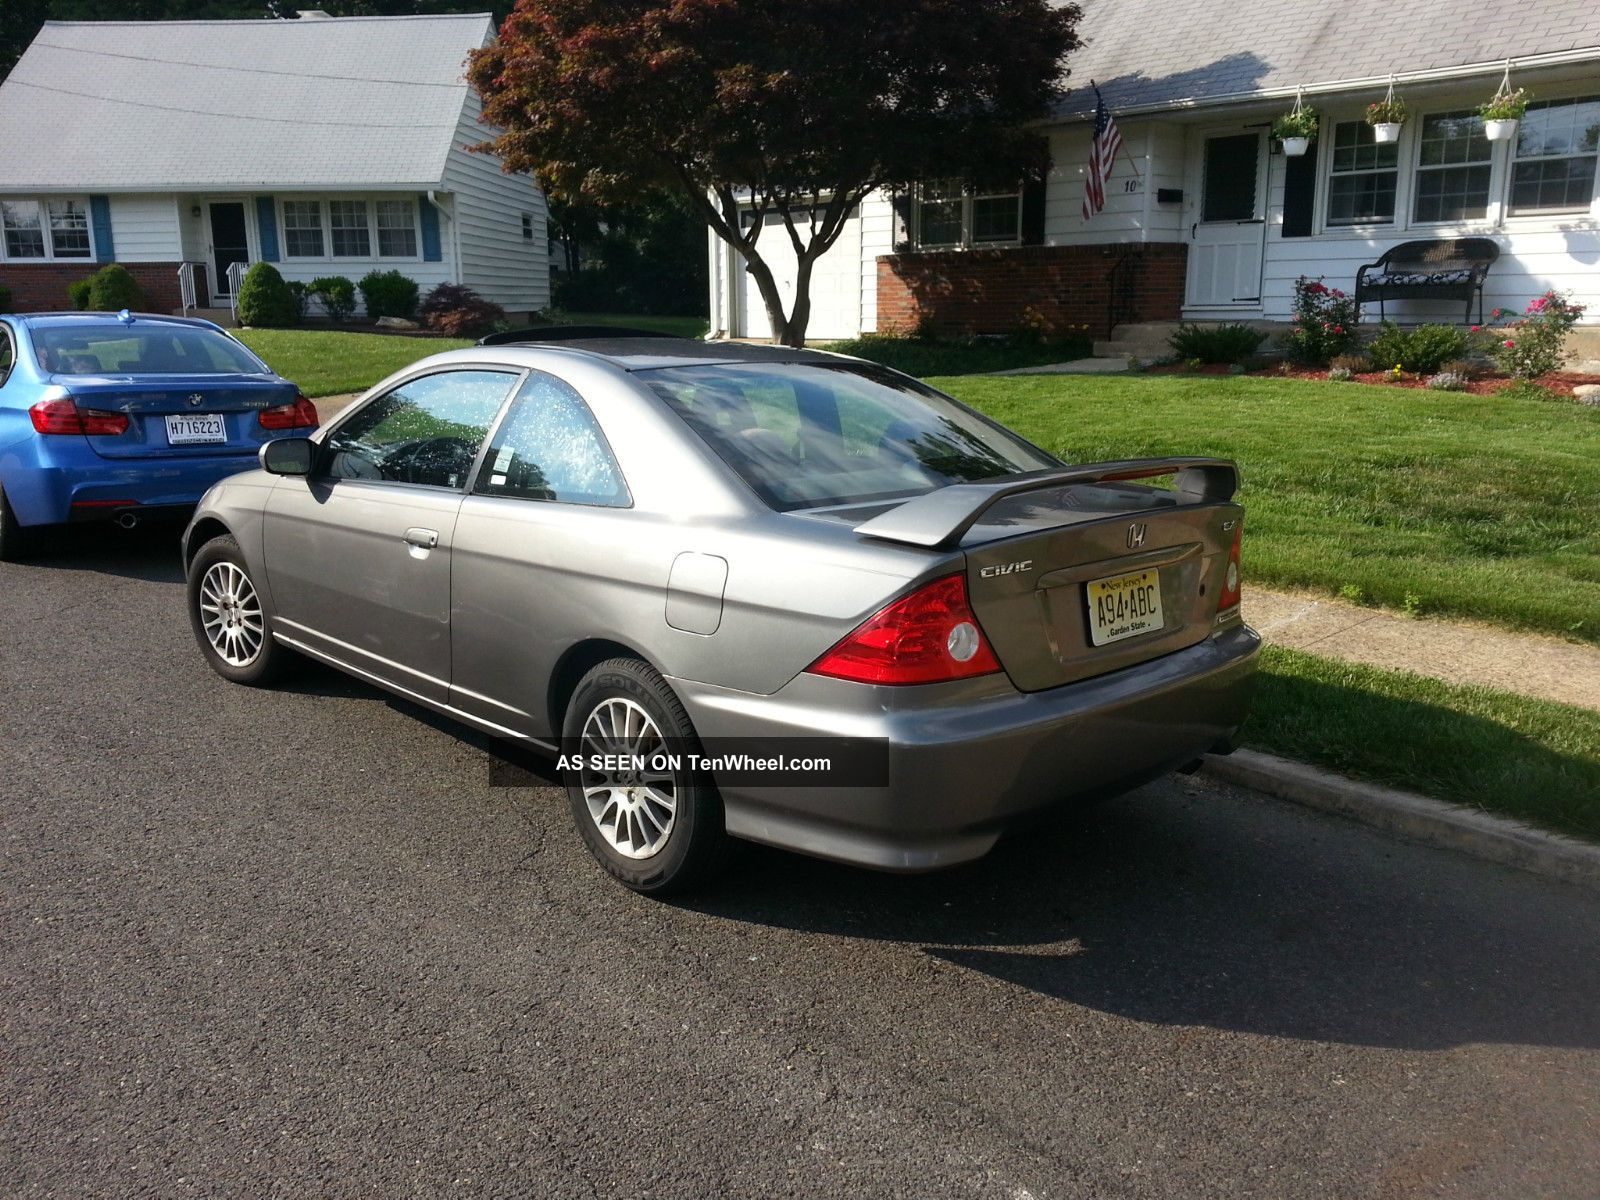 2005 honda civic ex coupe 2 door fully maintained adult owned. Black Bedroom Furniture Sets. Home Design Ideas